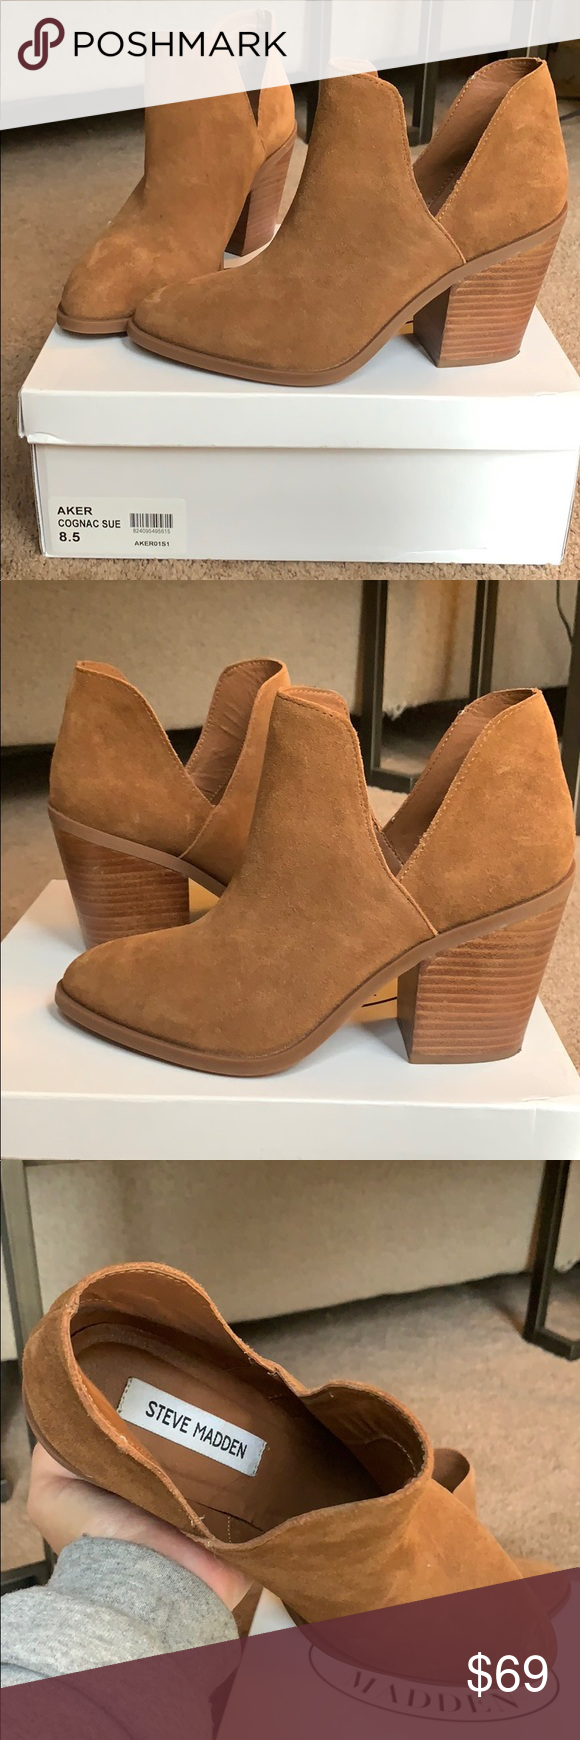 """f7cc8cfad77 Steve Madden """"Aker"""" Worn ONCE for photo shoot indoors. No scratches or  rips. Sole looks brand new. Steve Madden Shoes Ankle Boots   Booties"""